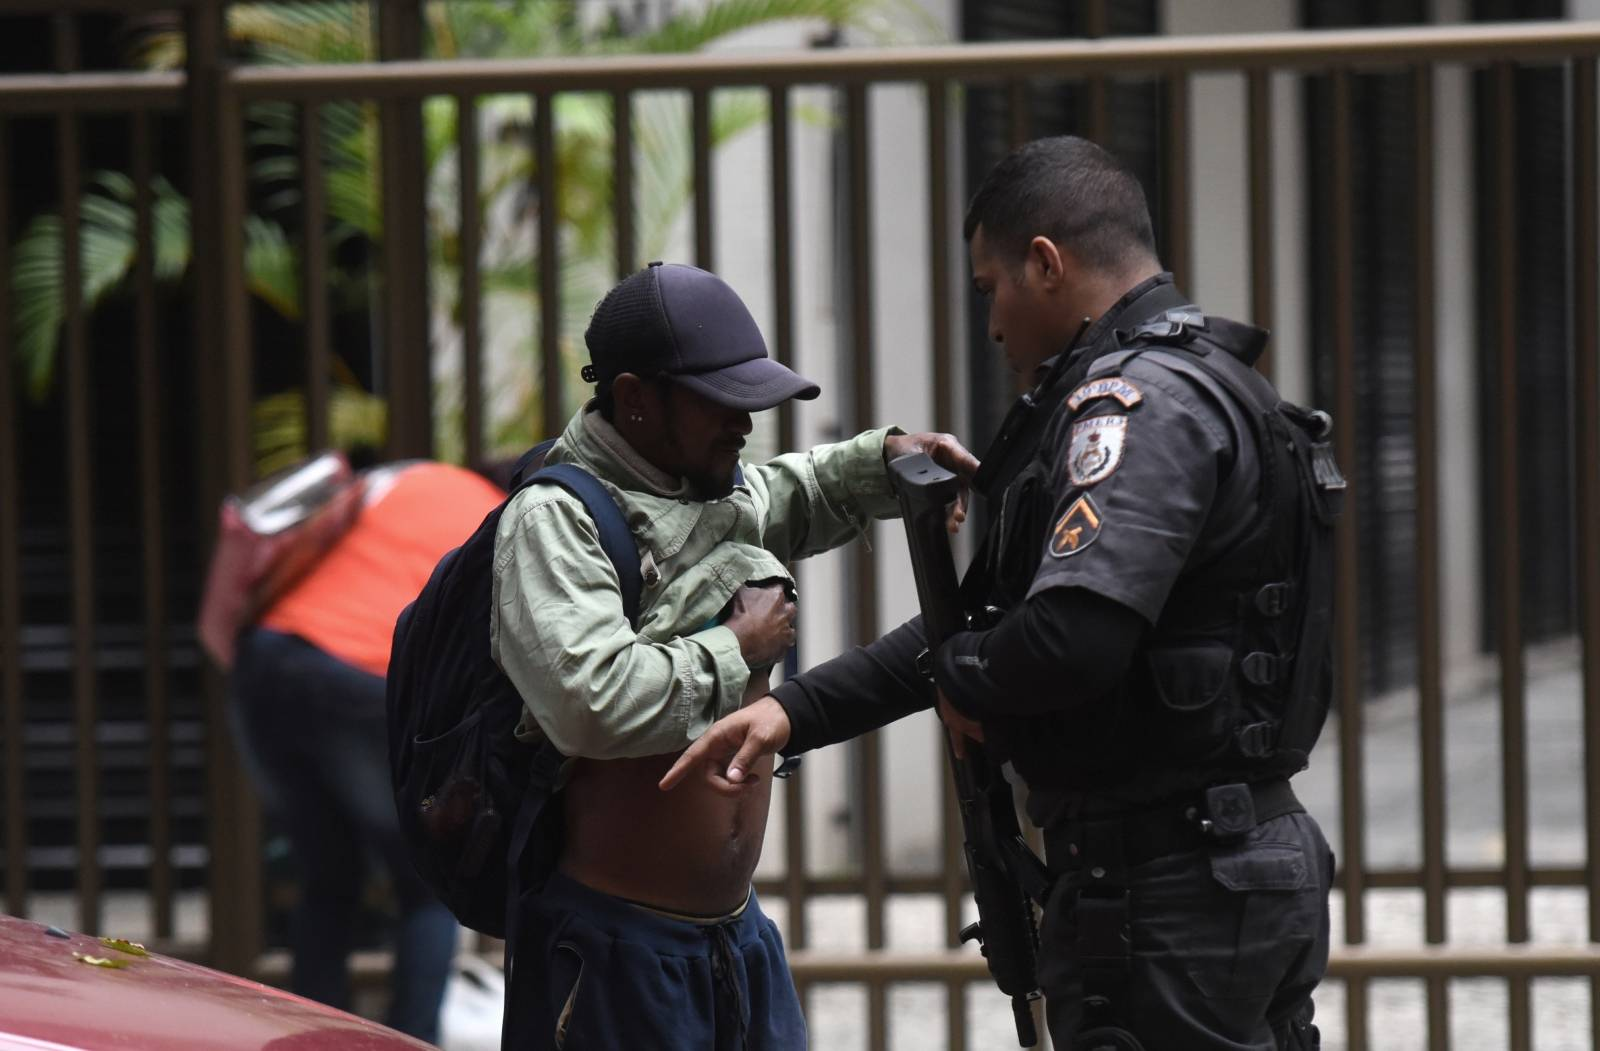 Security forces in Brazil